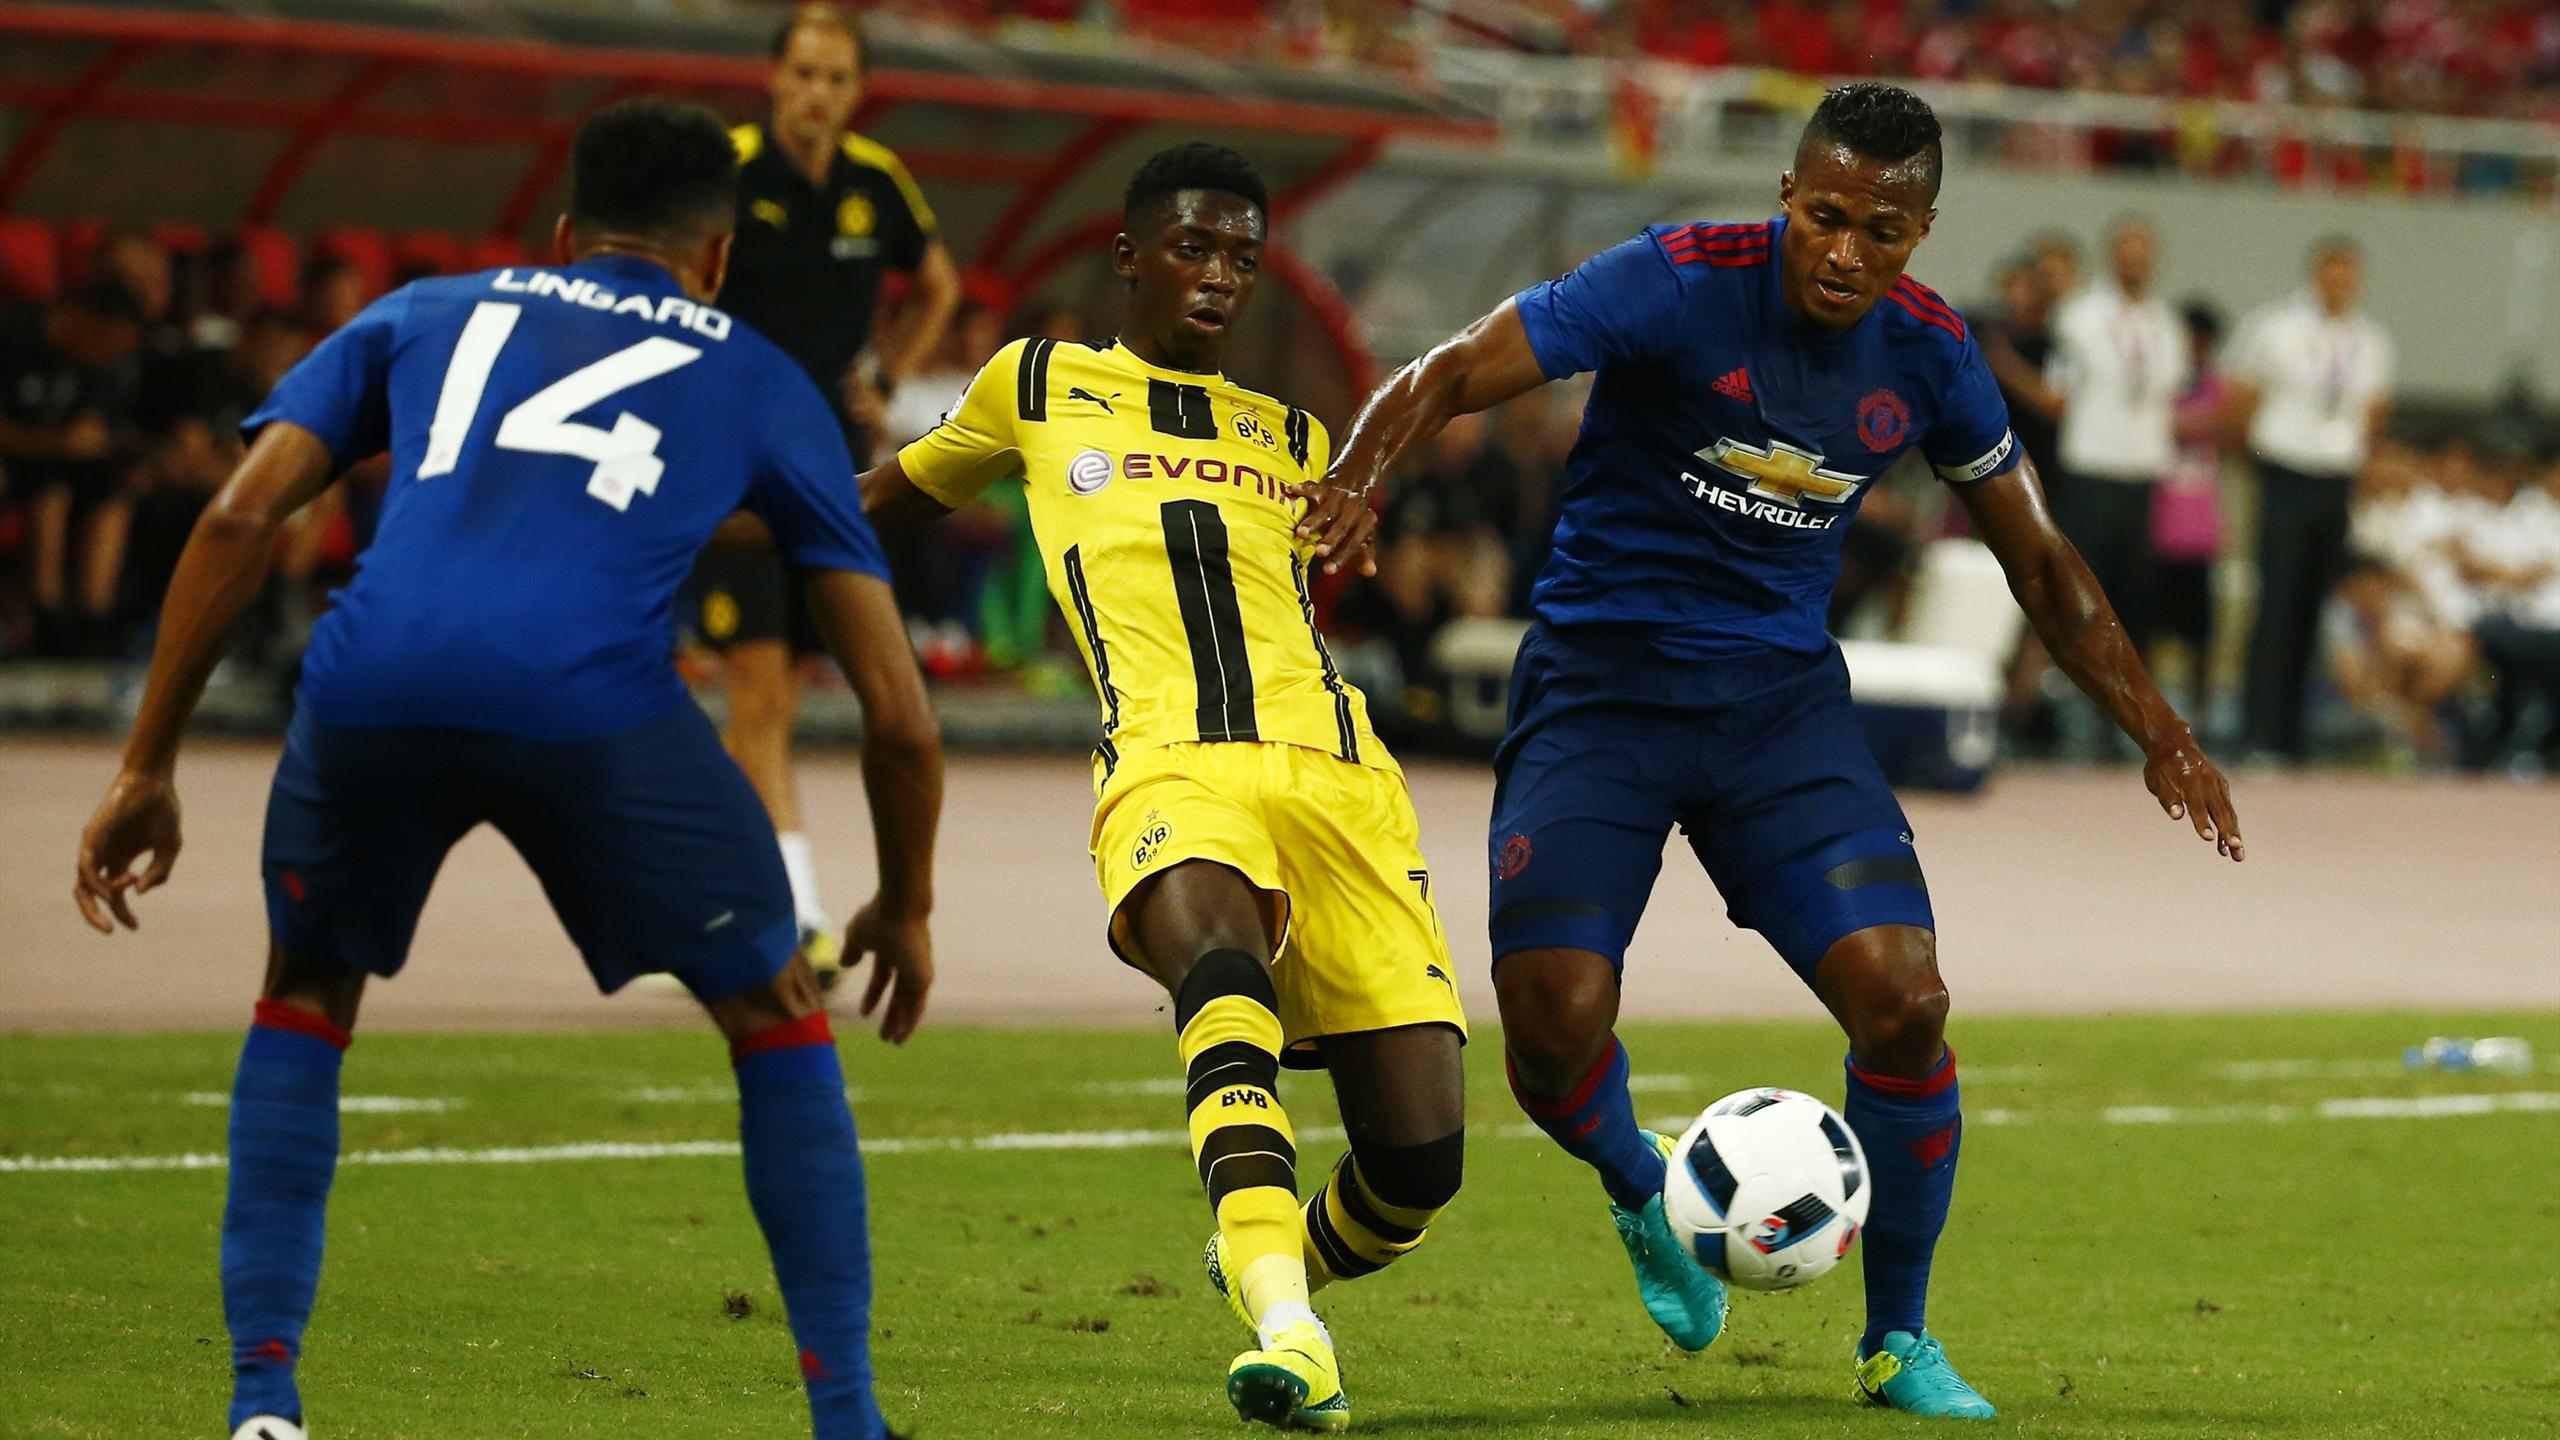 Manchester United's Antonio Valencia in action with Borussia Dortmund's Ousmane Dembele